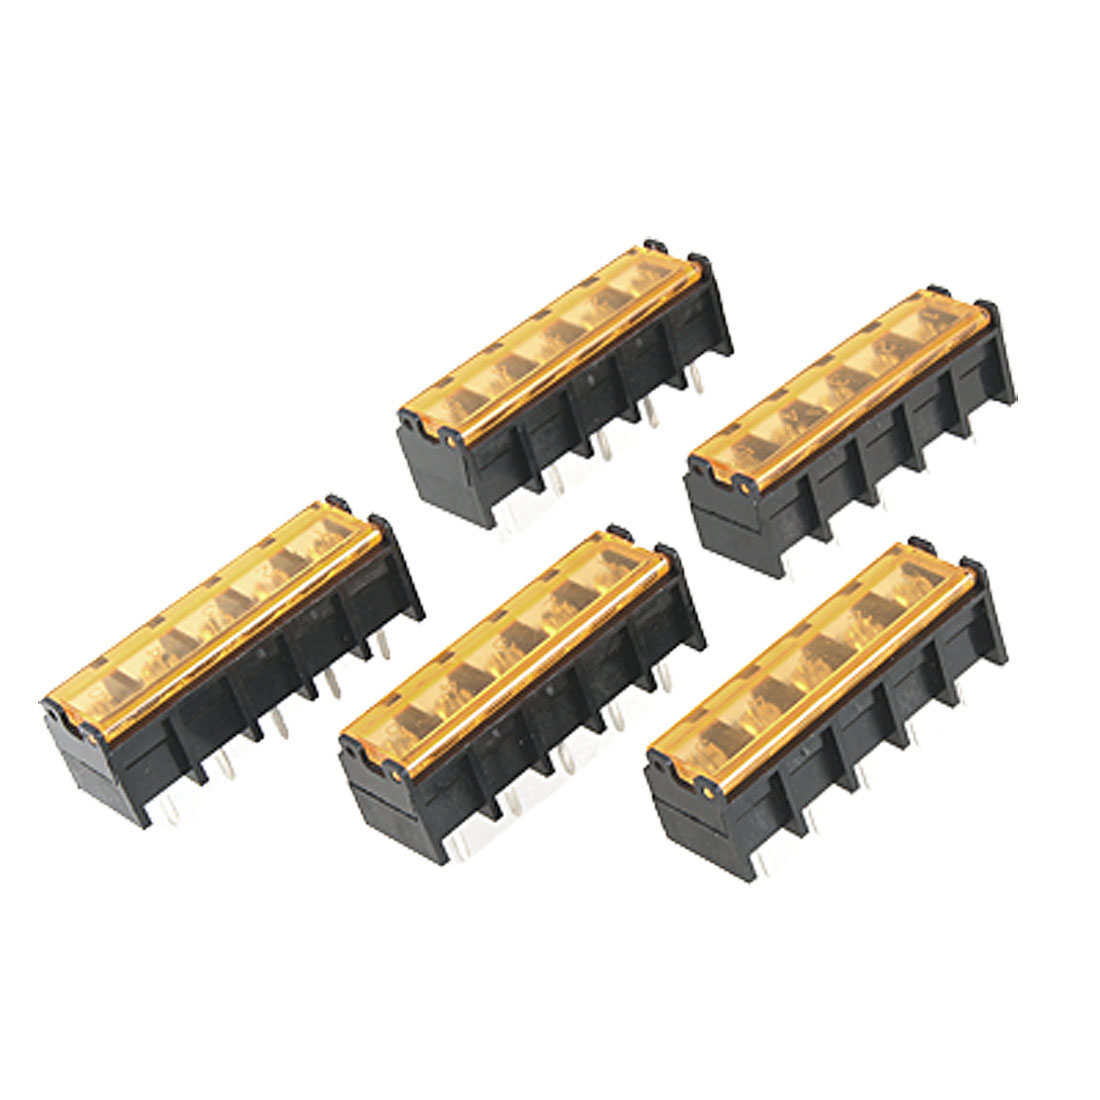 300V 30A 5 Pin Position Covererd Screw Barrier Terminal Block 5 Pcs